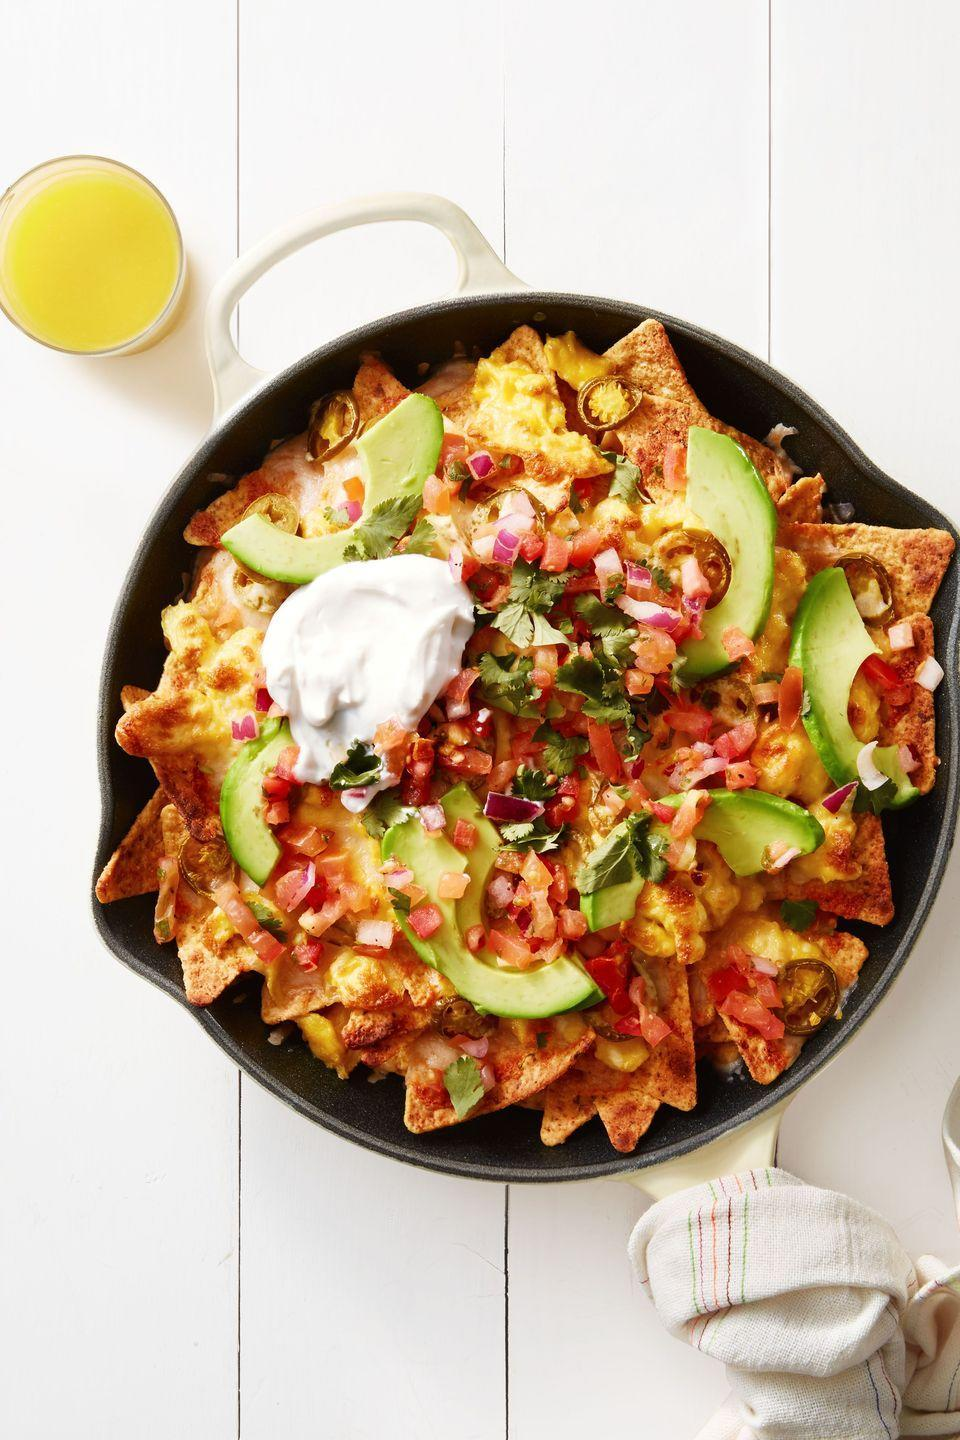 """<p>Welp, it looks like the <a href=""""https://www.goodhousekeeping.com/food-recipes/healthy/g4895/healthy-quesadilla-recipes/"""" rel=""""nofollow noopener"""" target=""""_blank"""" data-ylk=""""slk:diet"""" class=""""link rapid-noclick-resp"""">diet</a> is starting tomorrow ...</p><p><em><a href=""""https://www.goodhousekeeping.com/food-recipes/a39354/mexican-breakfast-chilaquiles-recipe/"""" rel=""""nofollow noopener"""" target=""""_blank"""" data-ylk=""""slk:Get the recipe for Mexican Breakfast Chilaquiles »"""" class=""""link rapid-noclick-resp"""">Get the recipe for Mexican Breakfast Chilaquiles »</a></em></p>"""